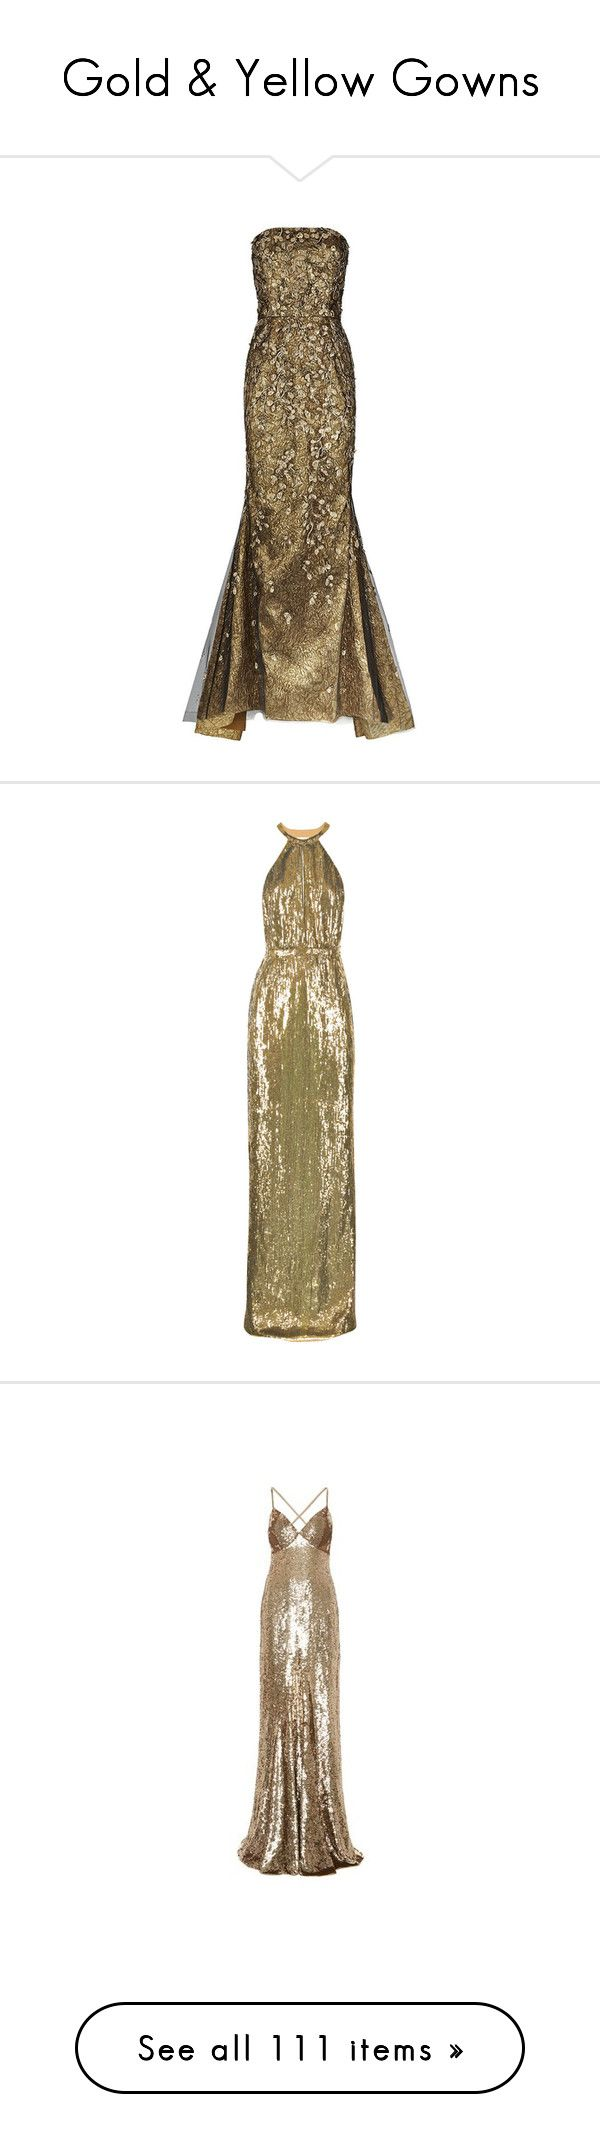 """""""Gold & Yellow Gowns"""" by sakuragirl ❤ liked on Polyvore featuring dresses, gowns, long dresses, evening gowns, oscar de la renta, long formal evening dresses, oscar de la renta dresses, brown dress, brown formal dress and beaded evening gowns"""